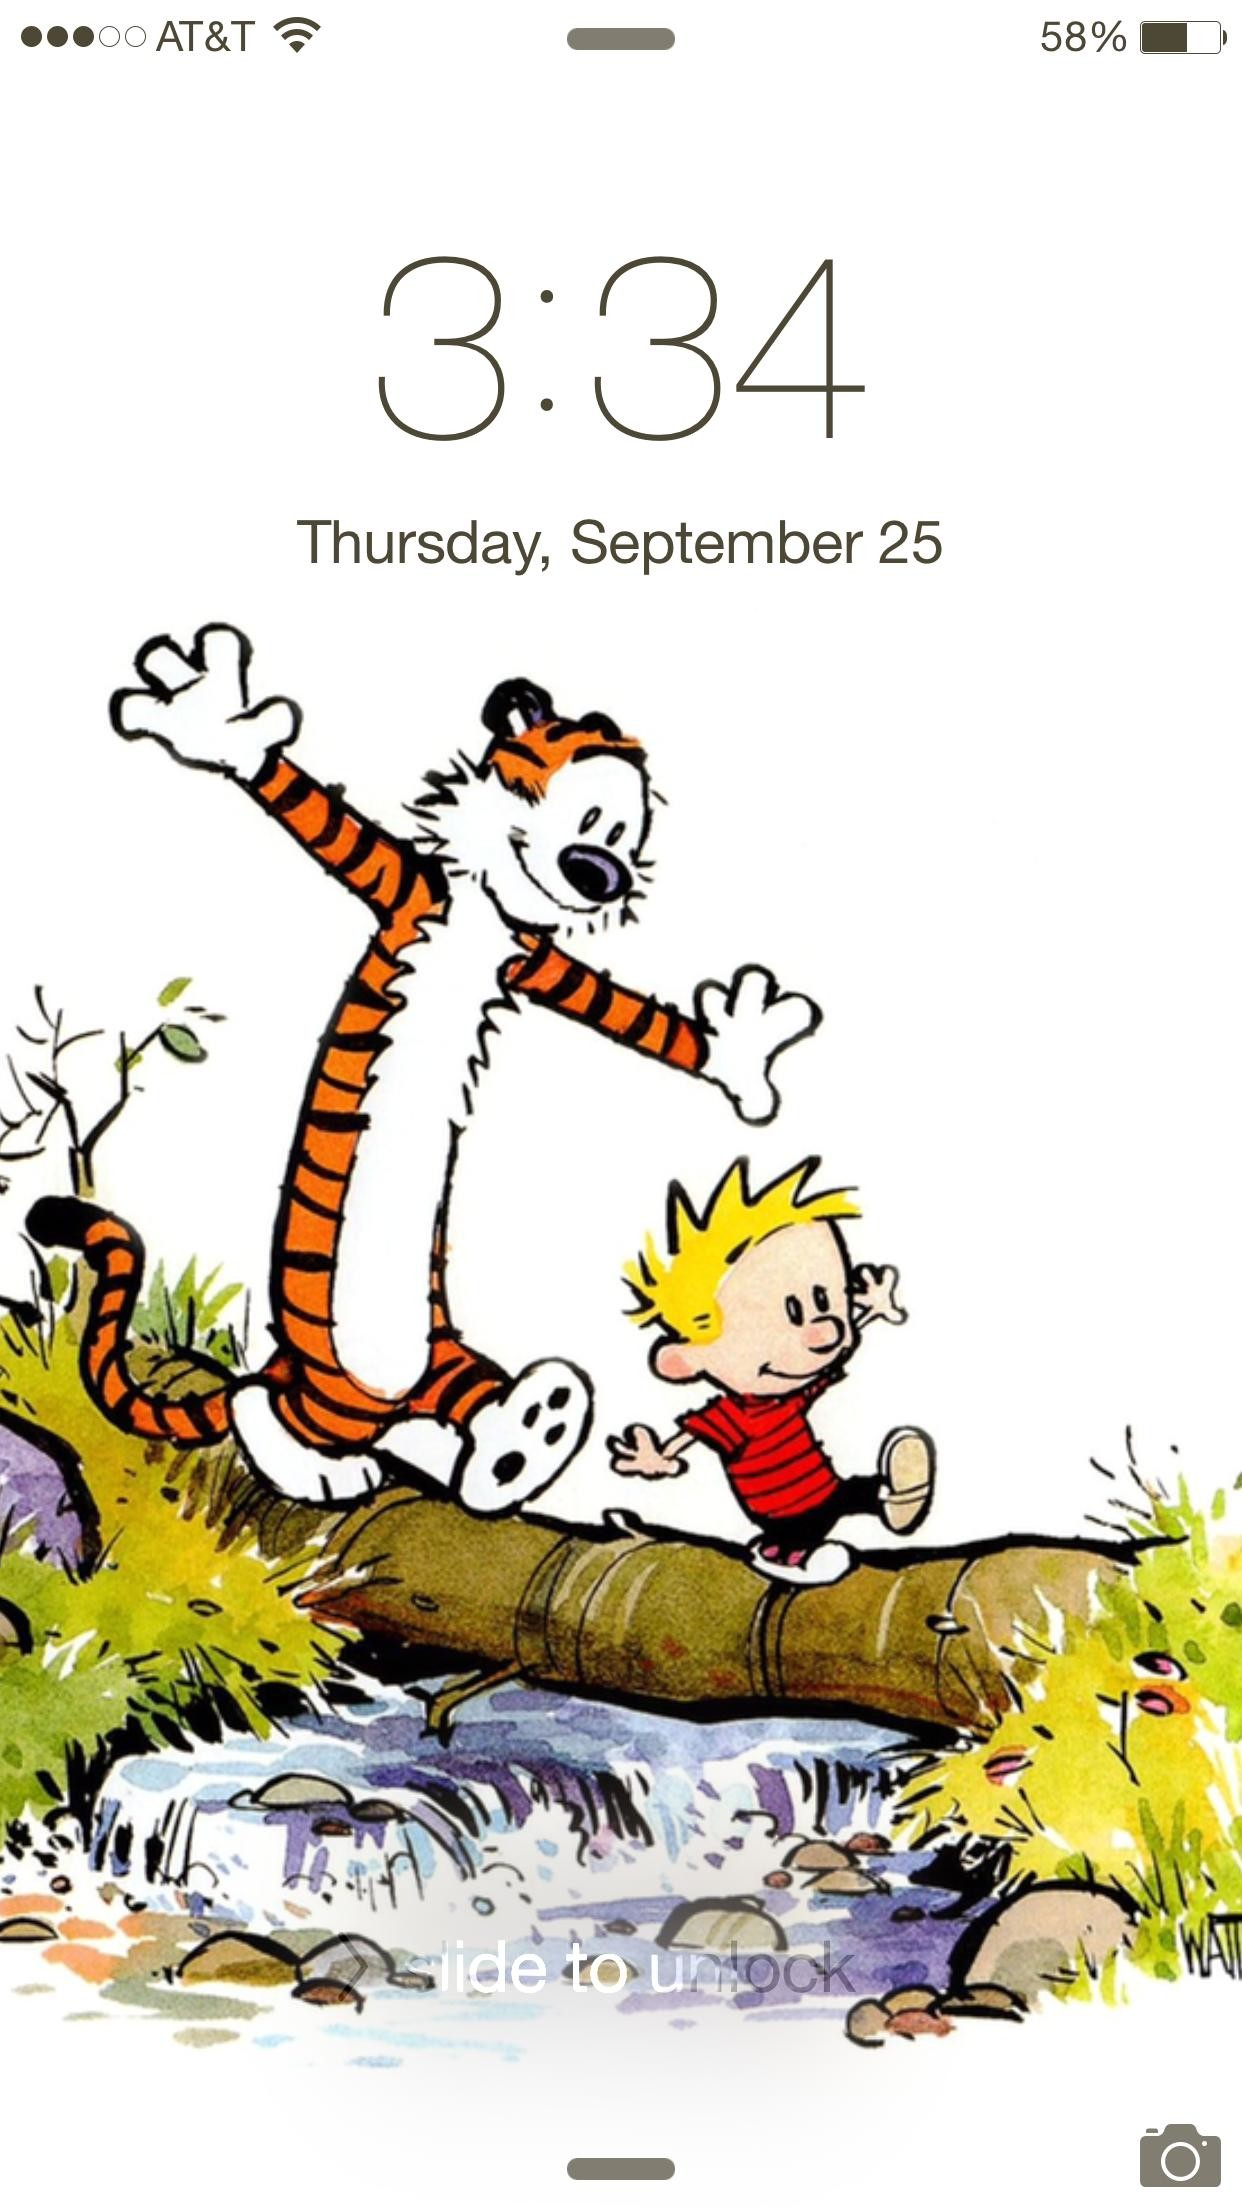 iPhone 6/6 Plus users, show us your lock screen wallpapers!